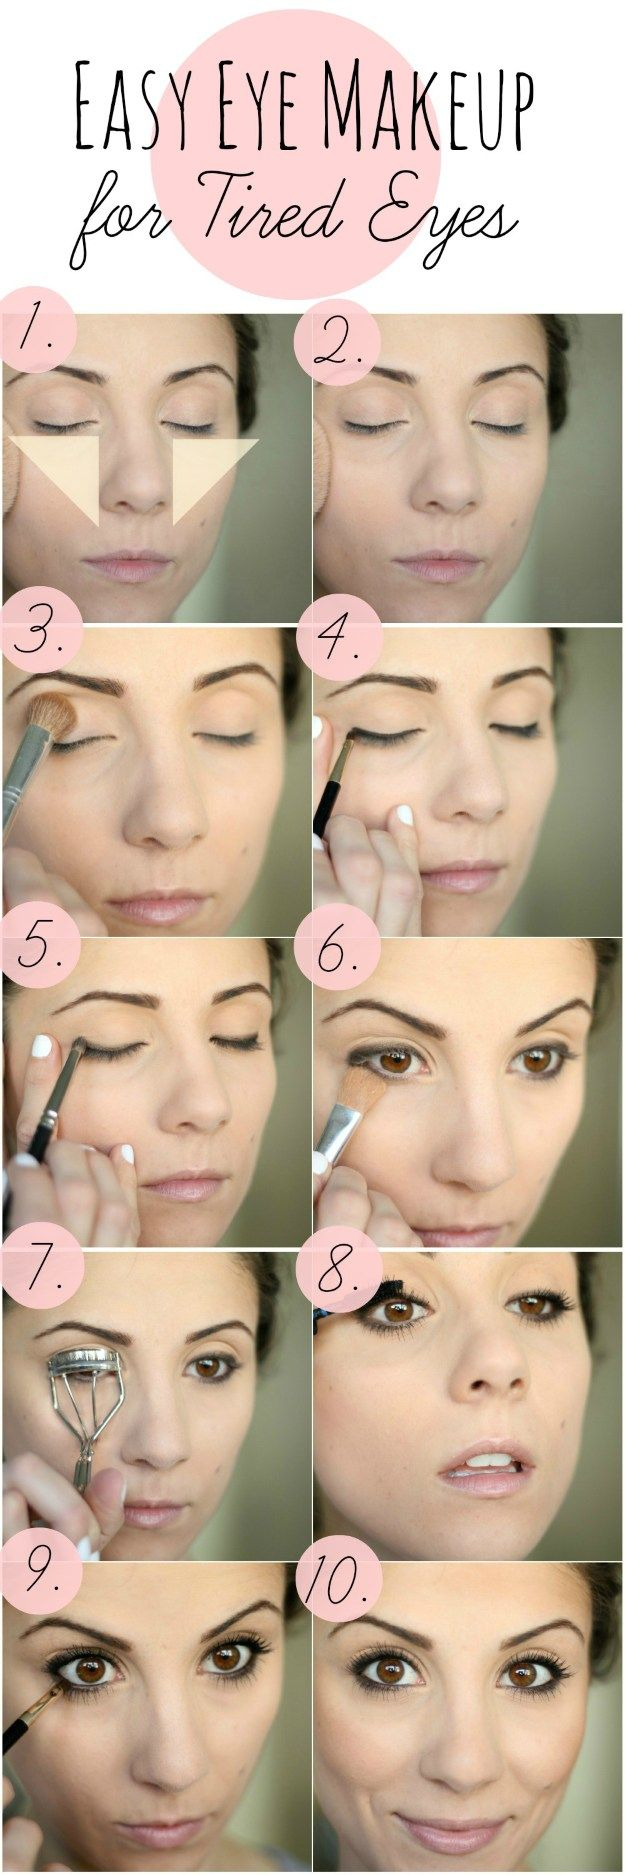 How to Hide Tired Eyes   Undereye Makeup Tips by Makeup Tutorials at   Makeup Tutorials http://makeuptutorials.com/10-minute-makeup-tutorials-for-work